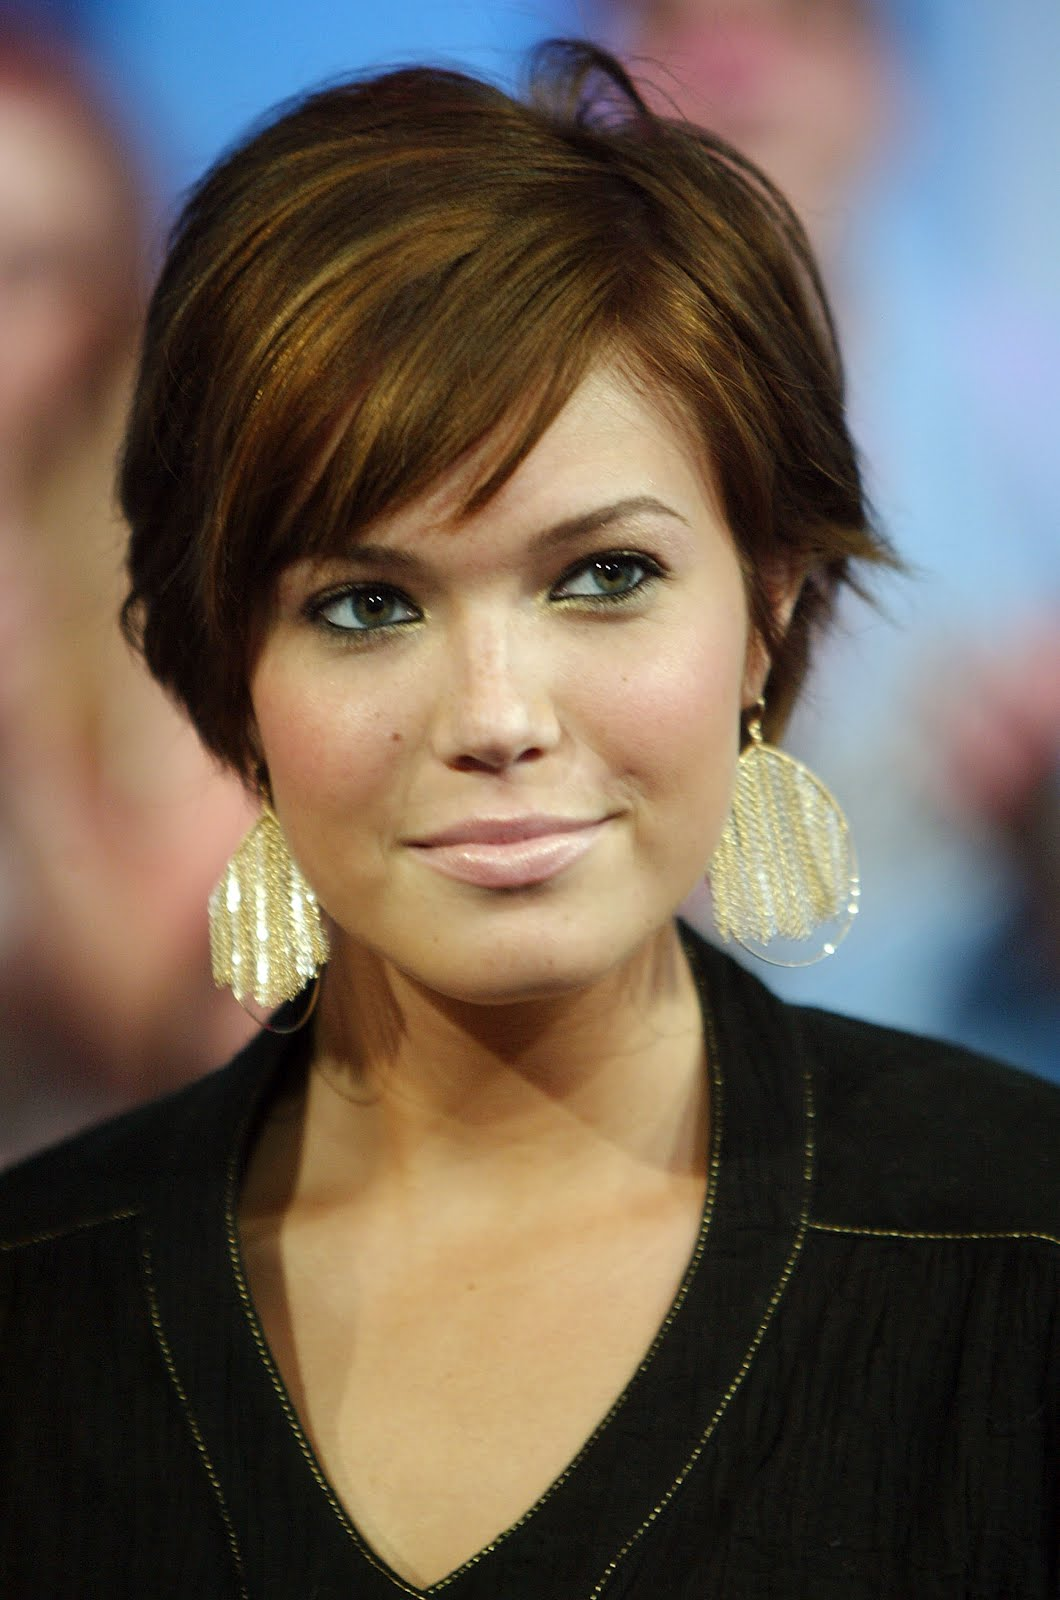 Awe Inspiring 30 Short Haircuts For Round Faces Short Hairstyles Gunalazisus